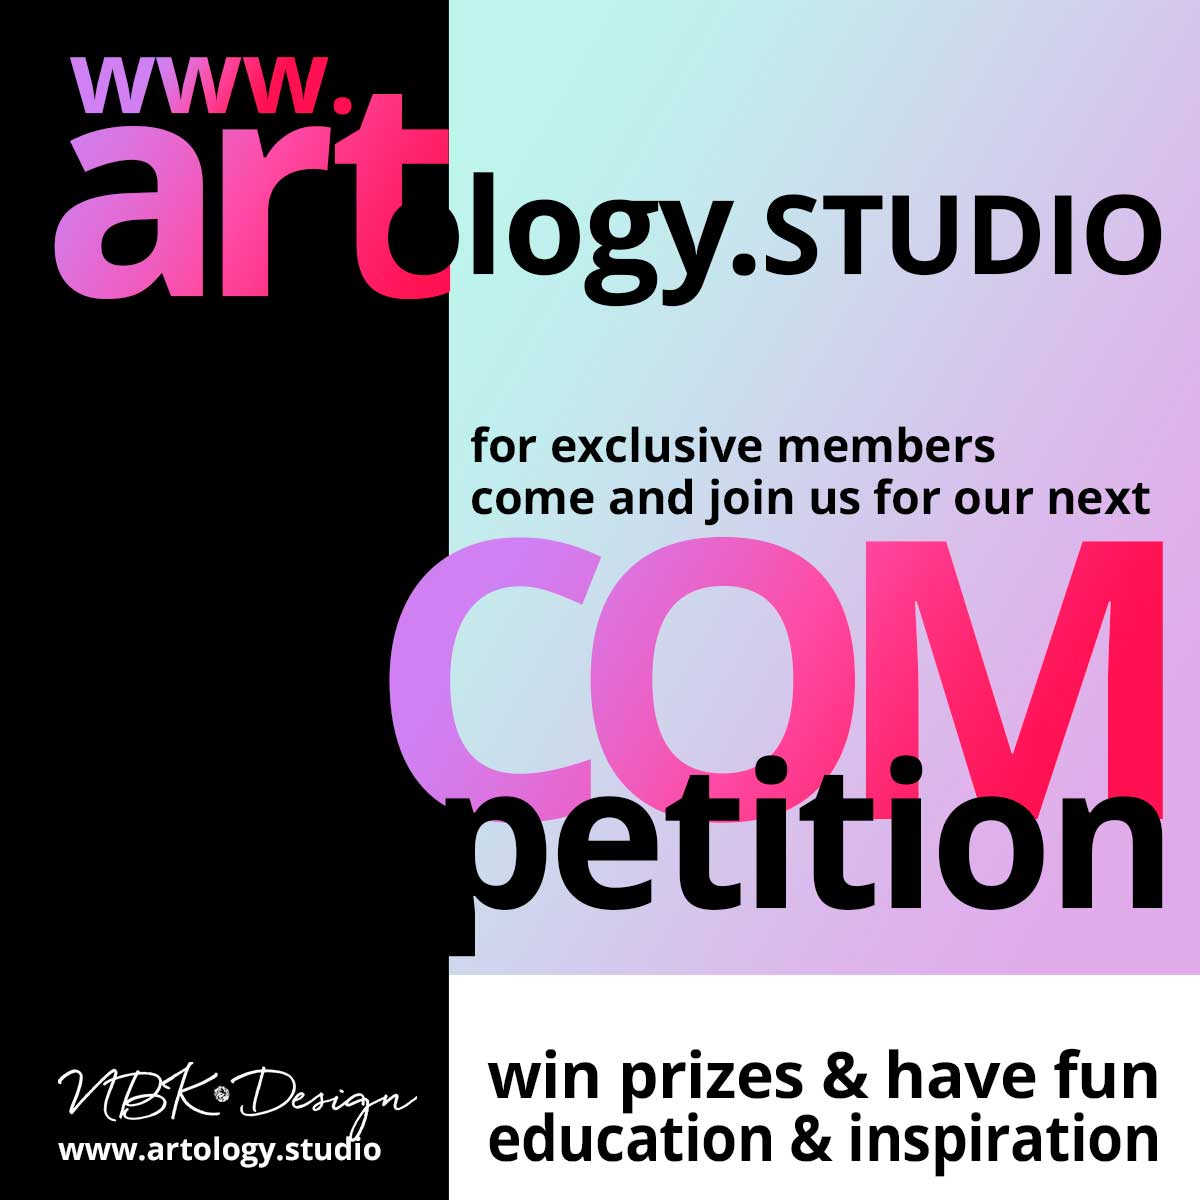 Competition @ the artology.studio – win a 5 $ Coupon to the NBK Design store